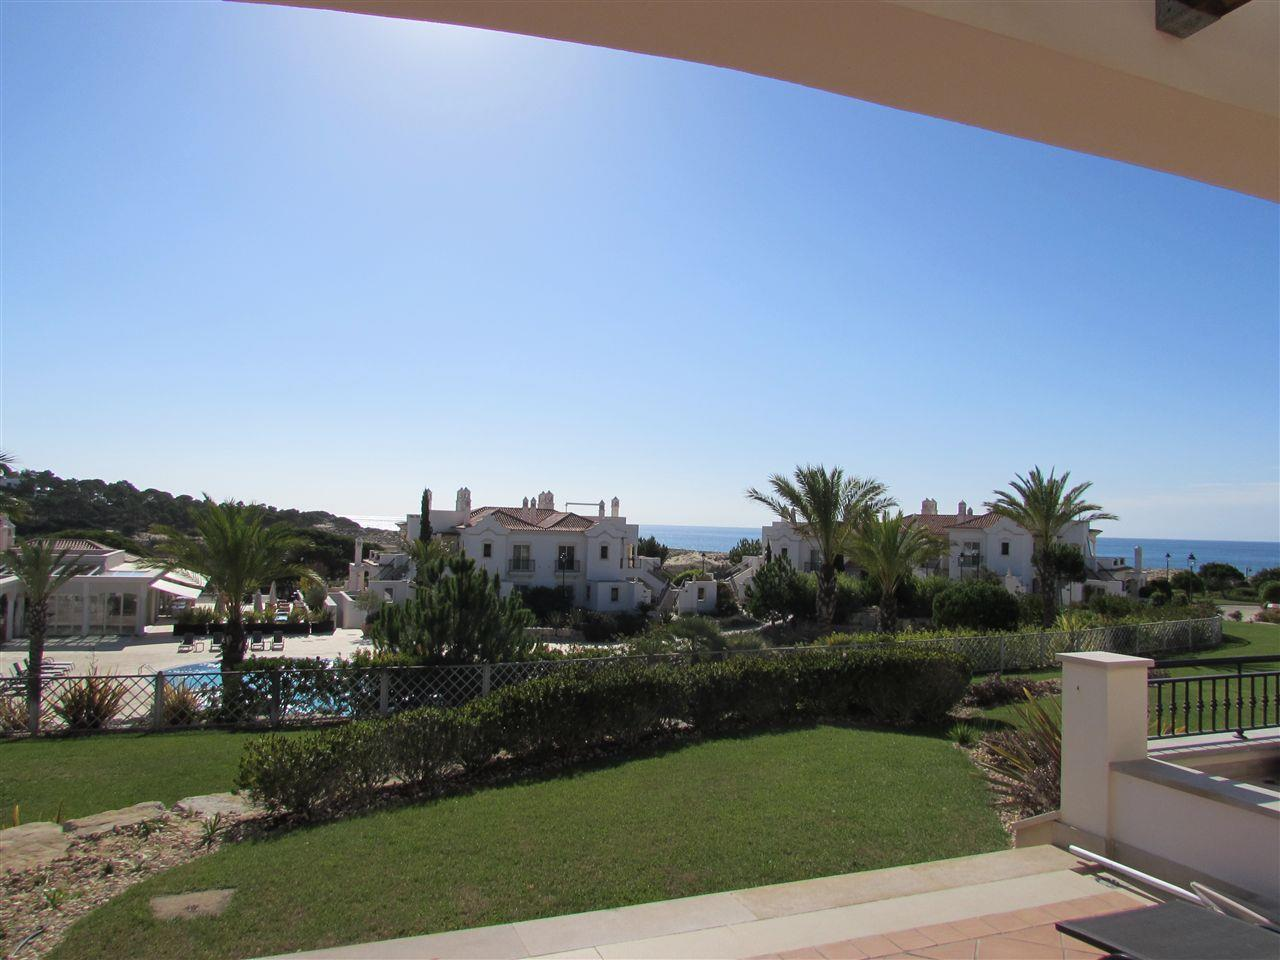 Apartamento por un Venta en Flat, 3 bedrooms, for Sale Loule, Algarve Portugal